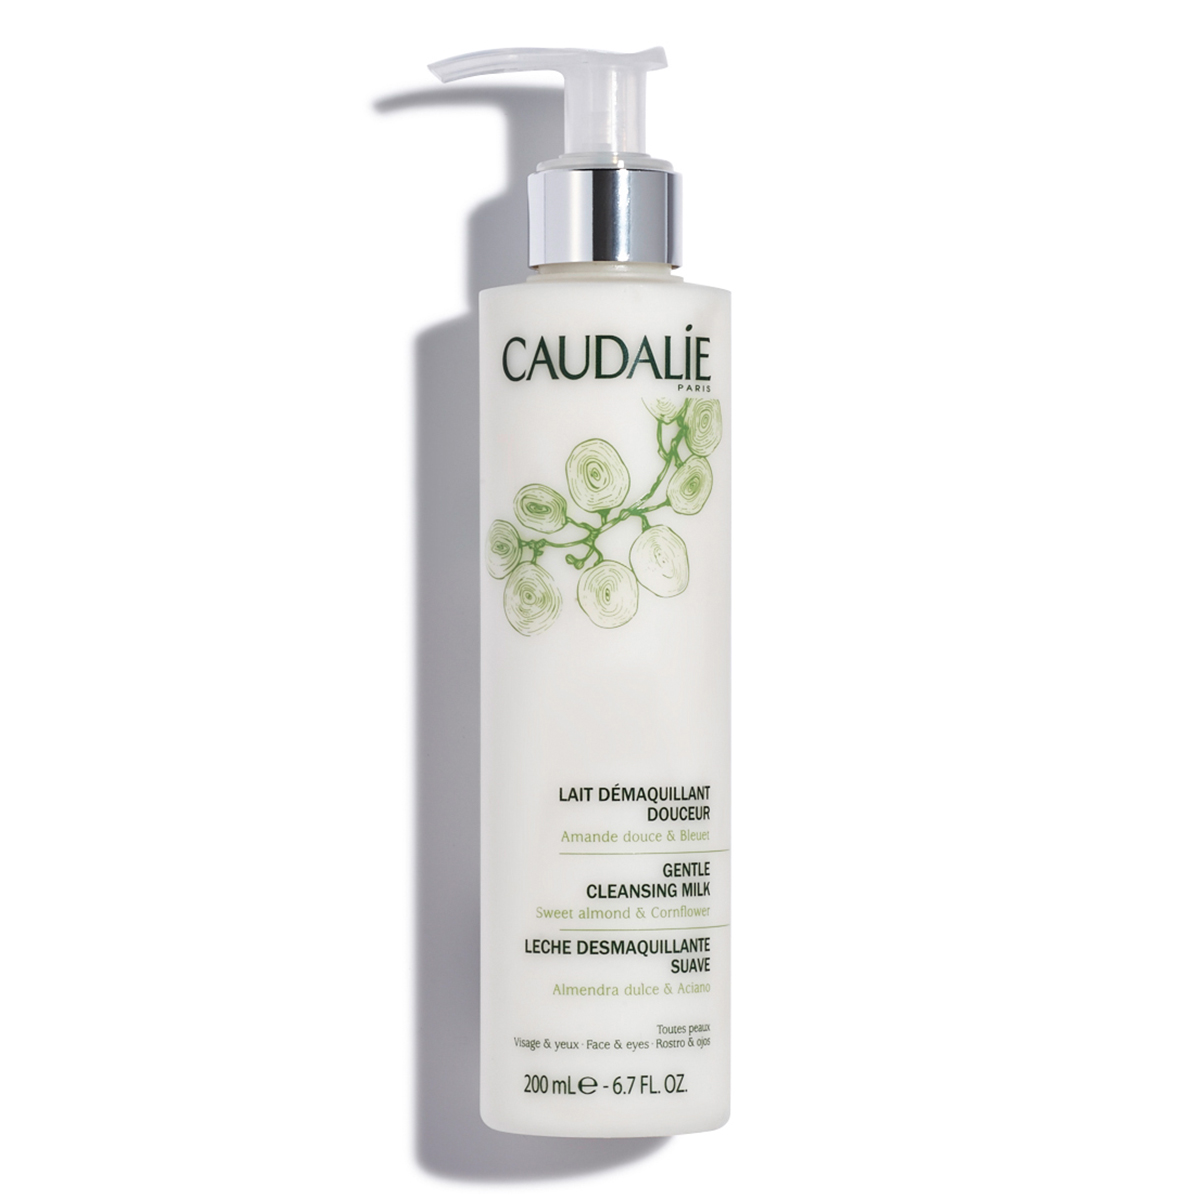 Gentle Cleansing Milk - 400ml